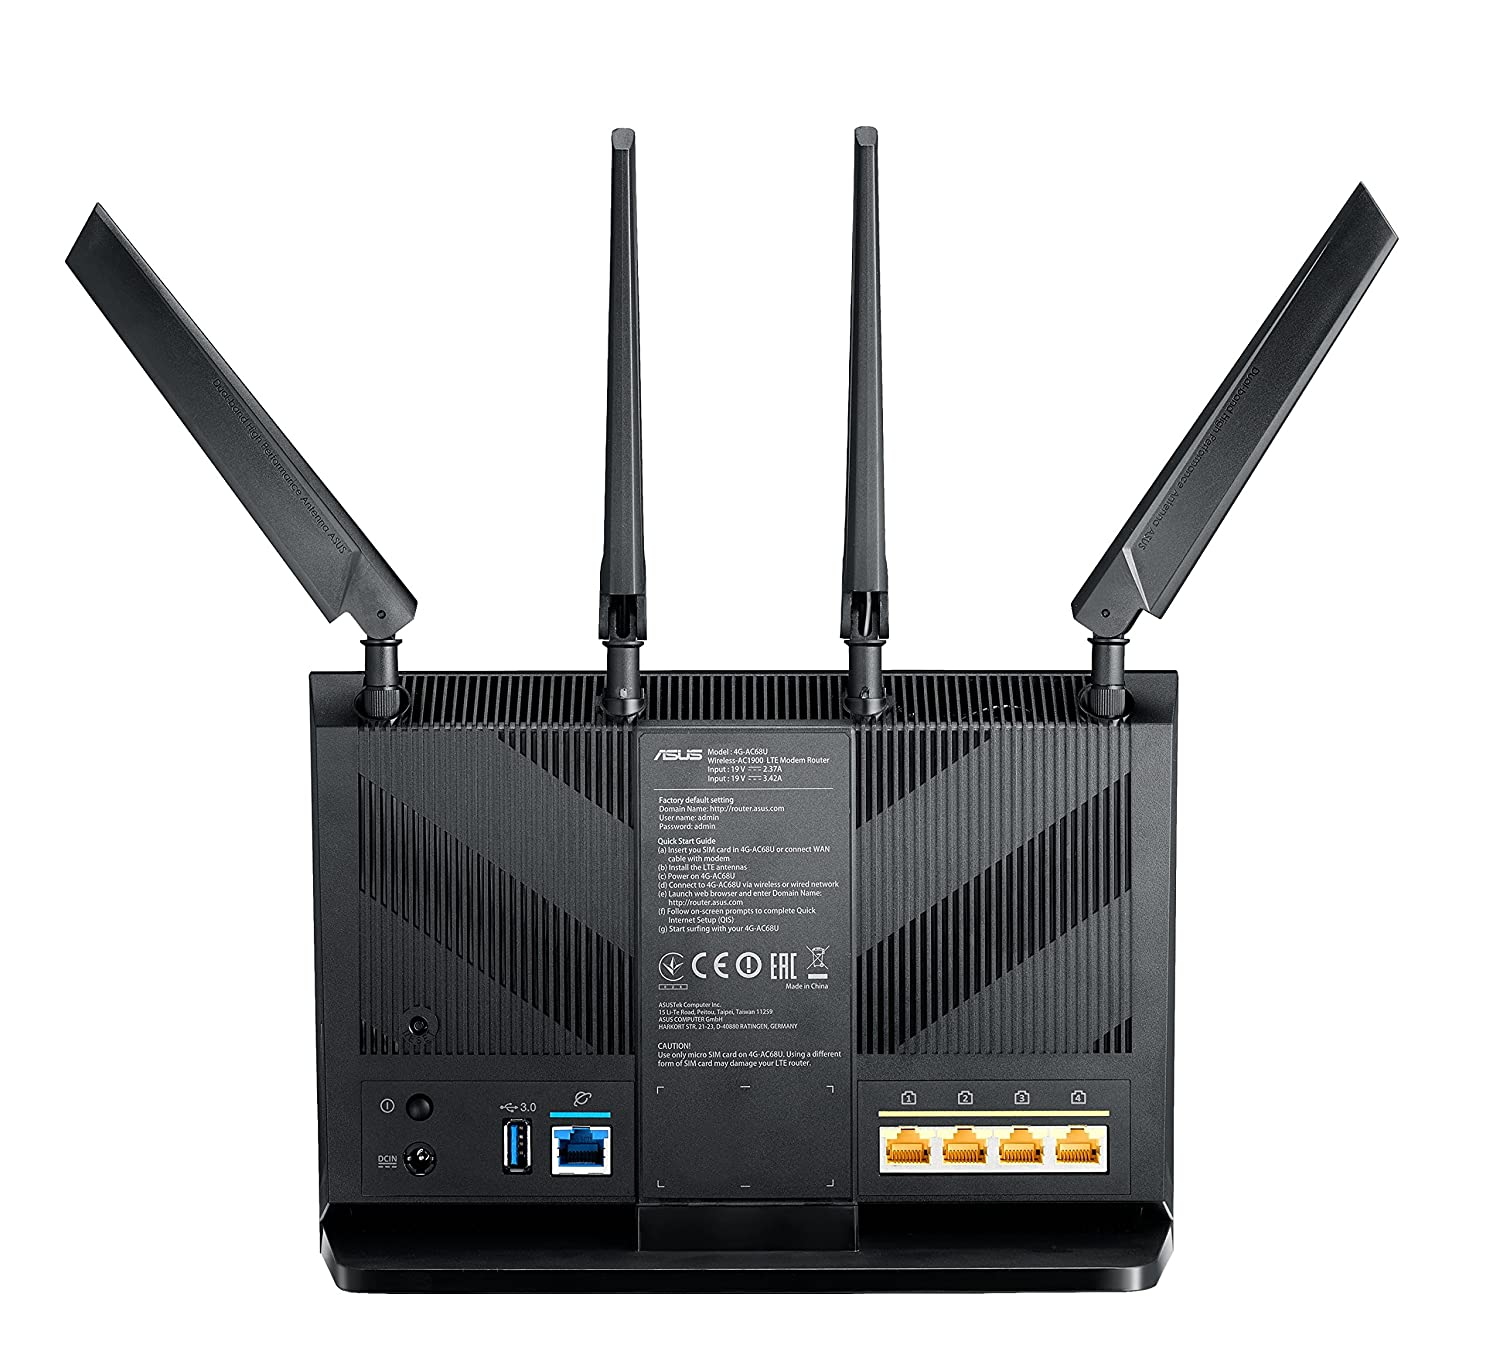 Wlan Router Sim Karte.Amazon Com Asus Wireless Modem Asus Nroina0208 2 4 Ghz 5 Ghz 4g